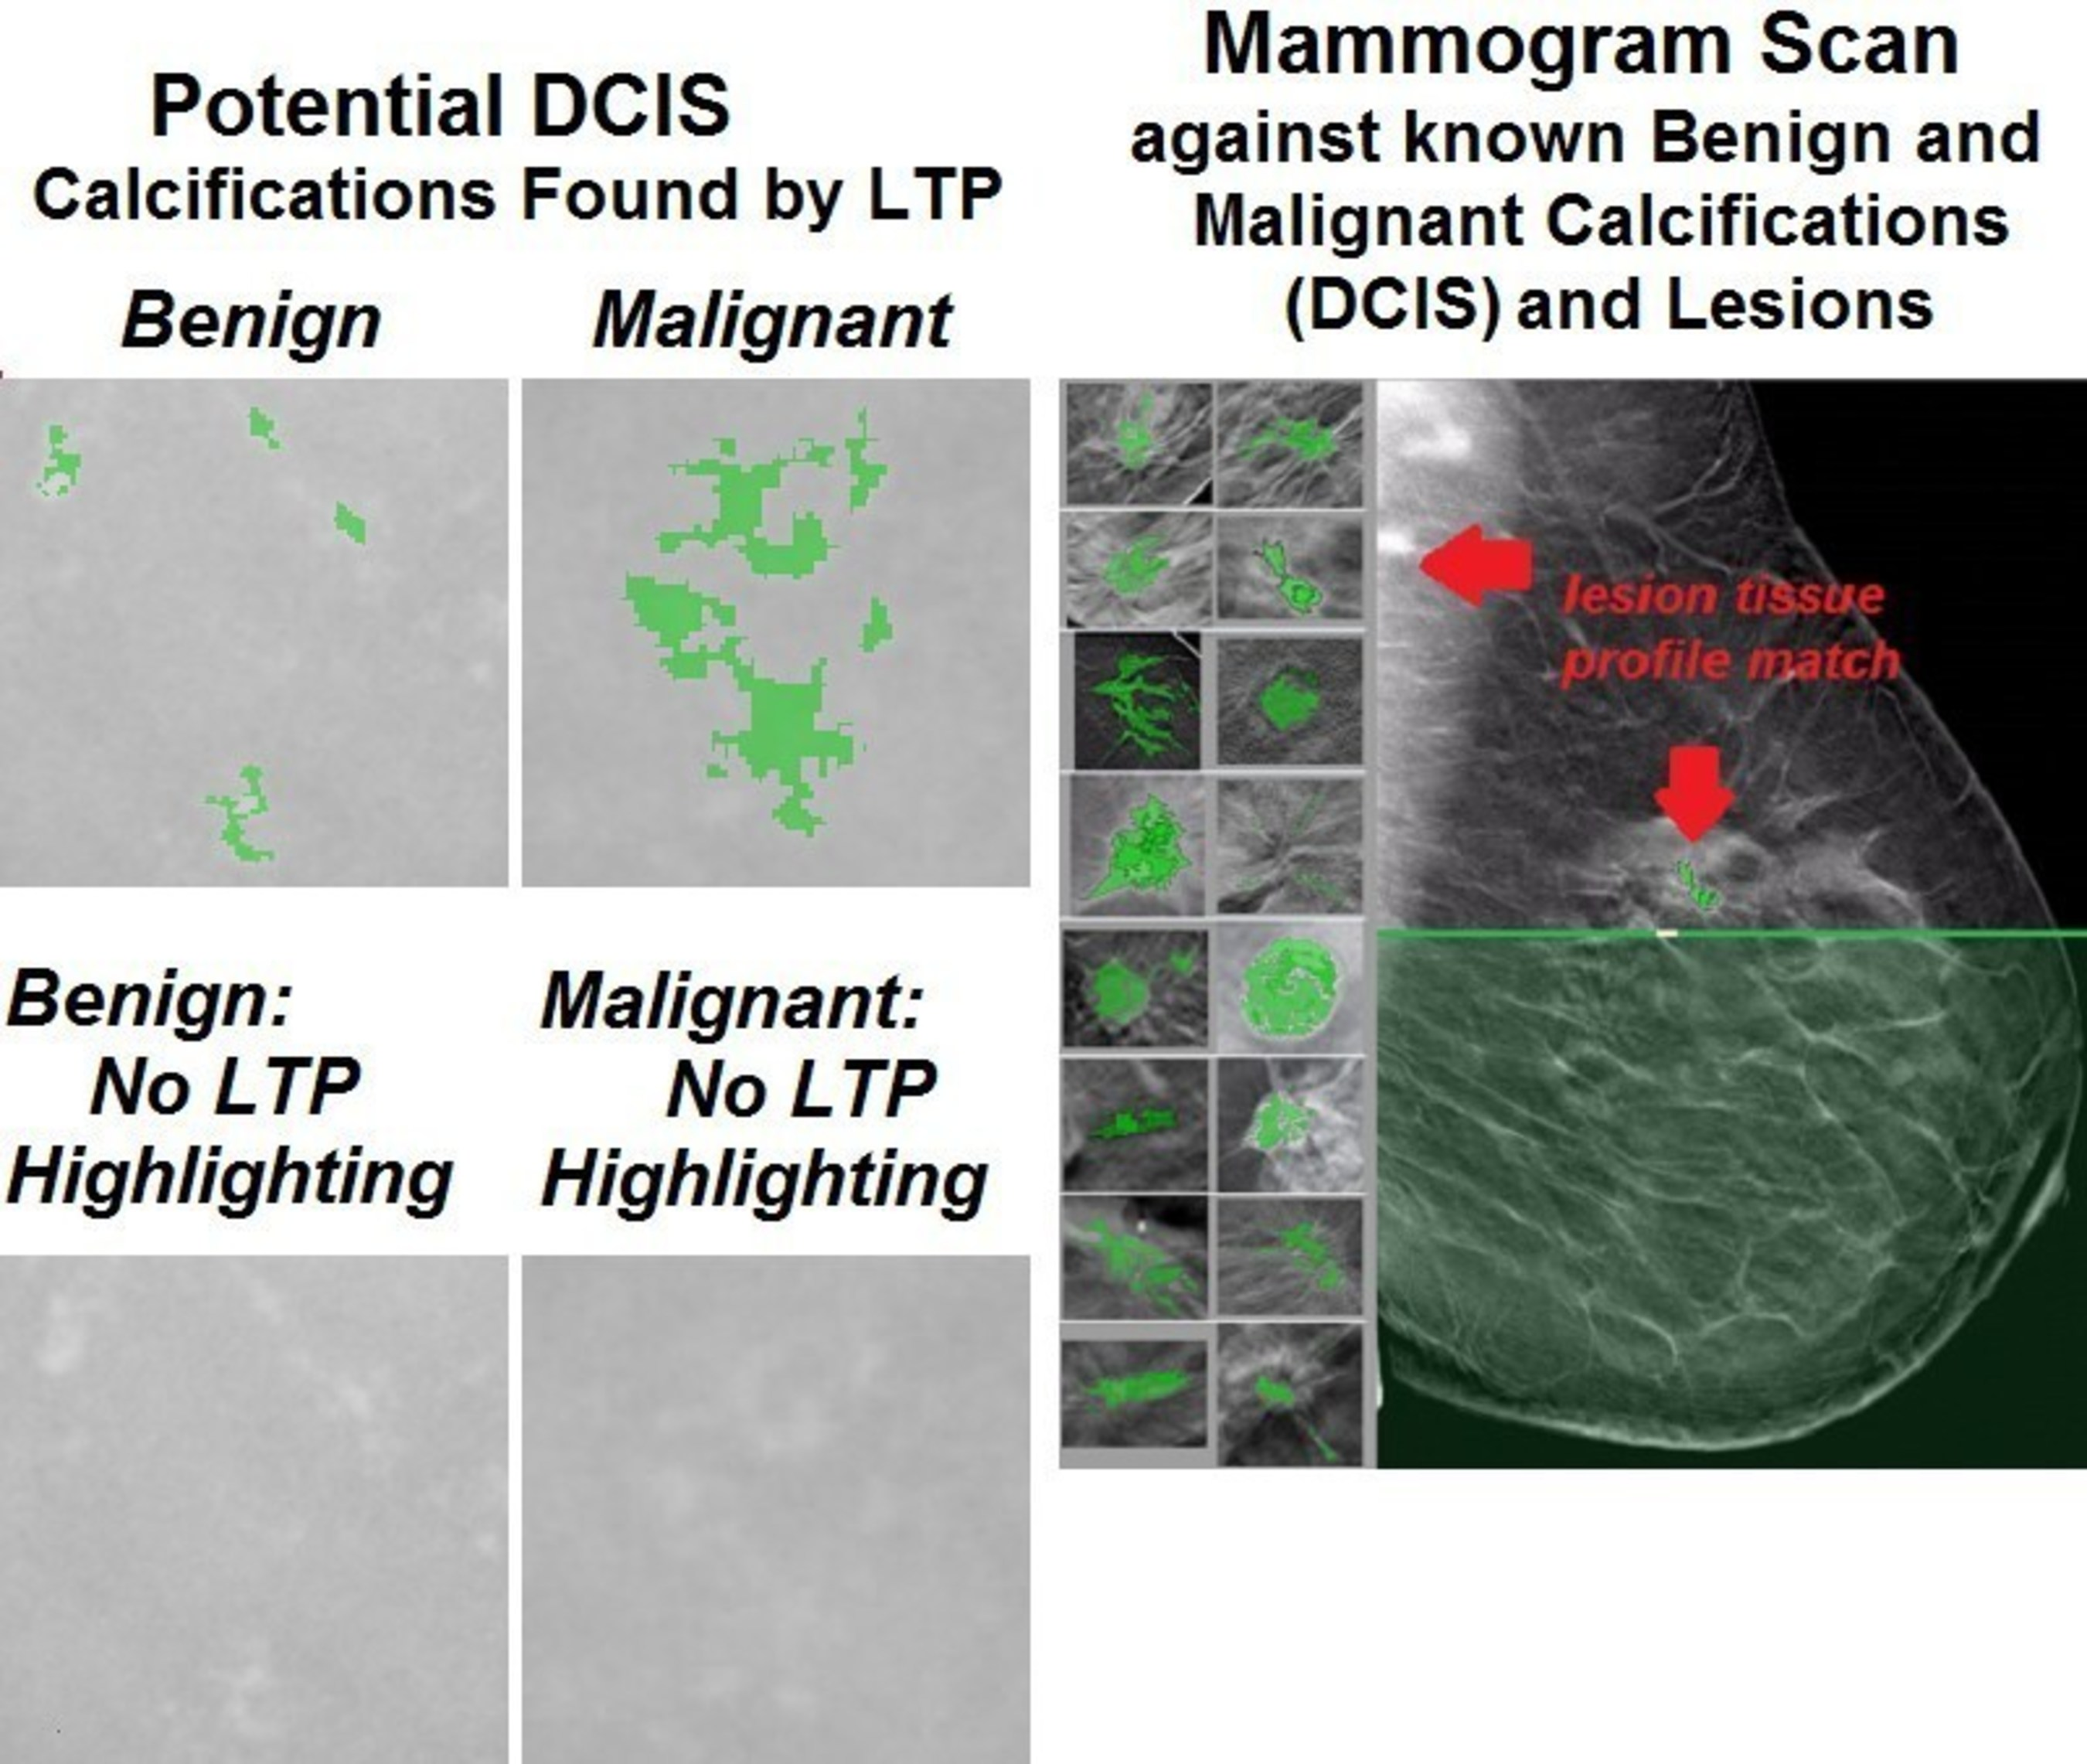 Ltp Finds And Separates Benign From Malignant Dcis And Breast Cancer